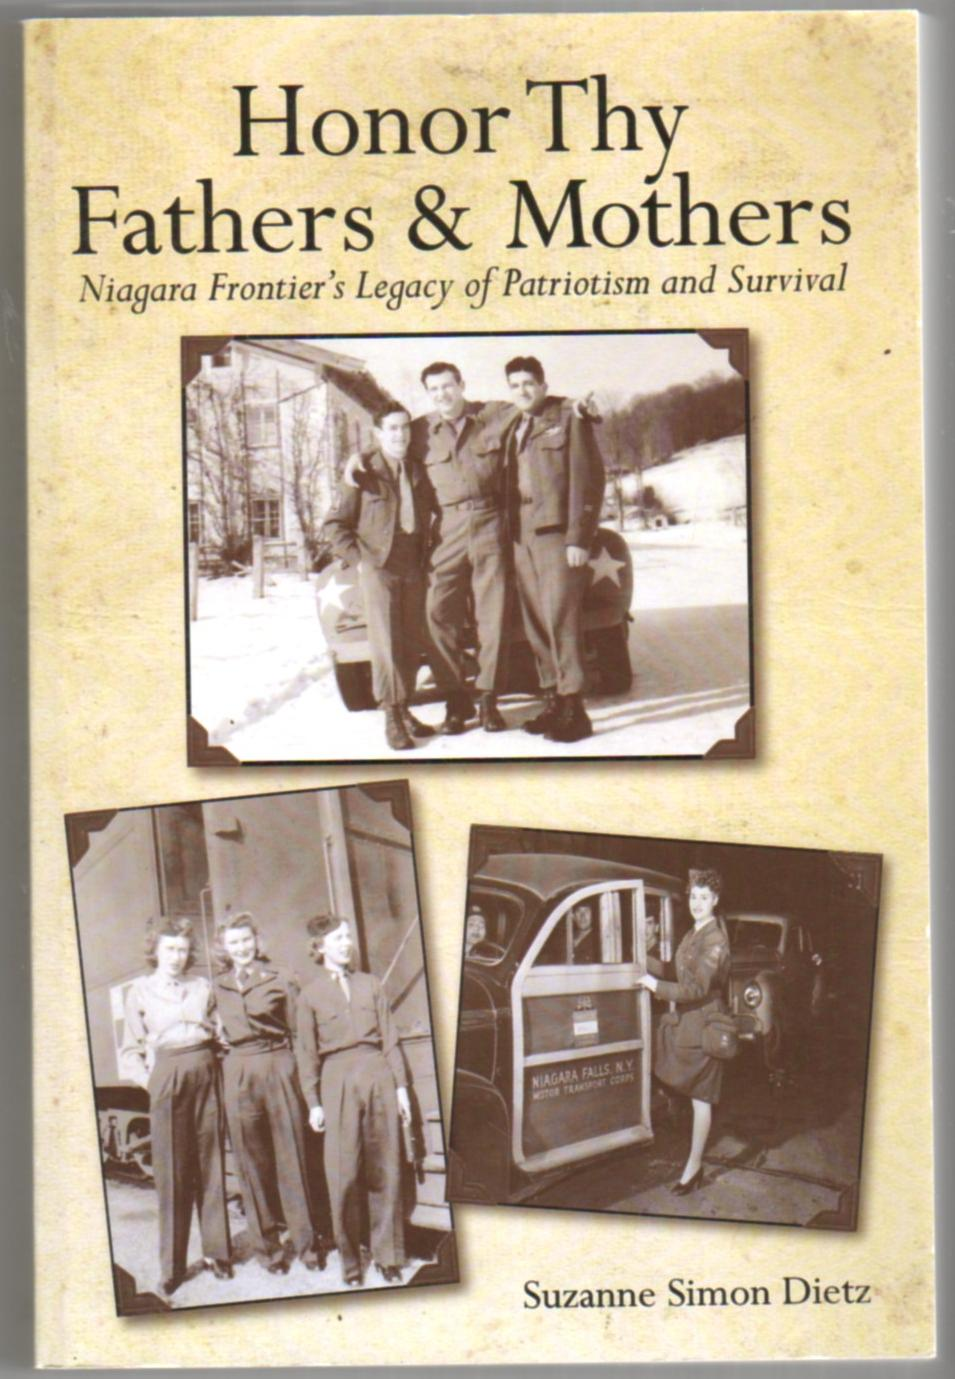 Image for Honor Thy Fathers & Mothers: Niagara Frontier's Legacy of Patriotism and Survival